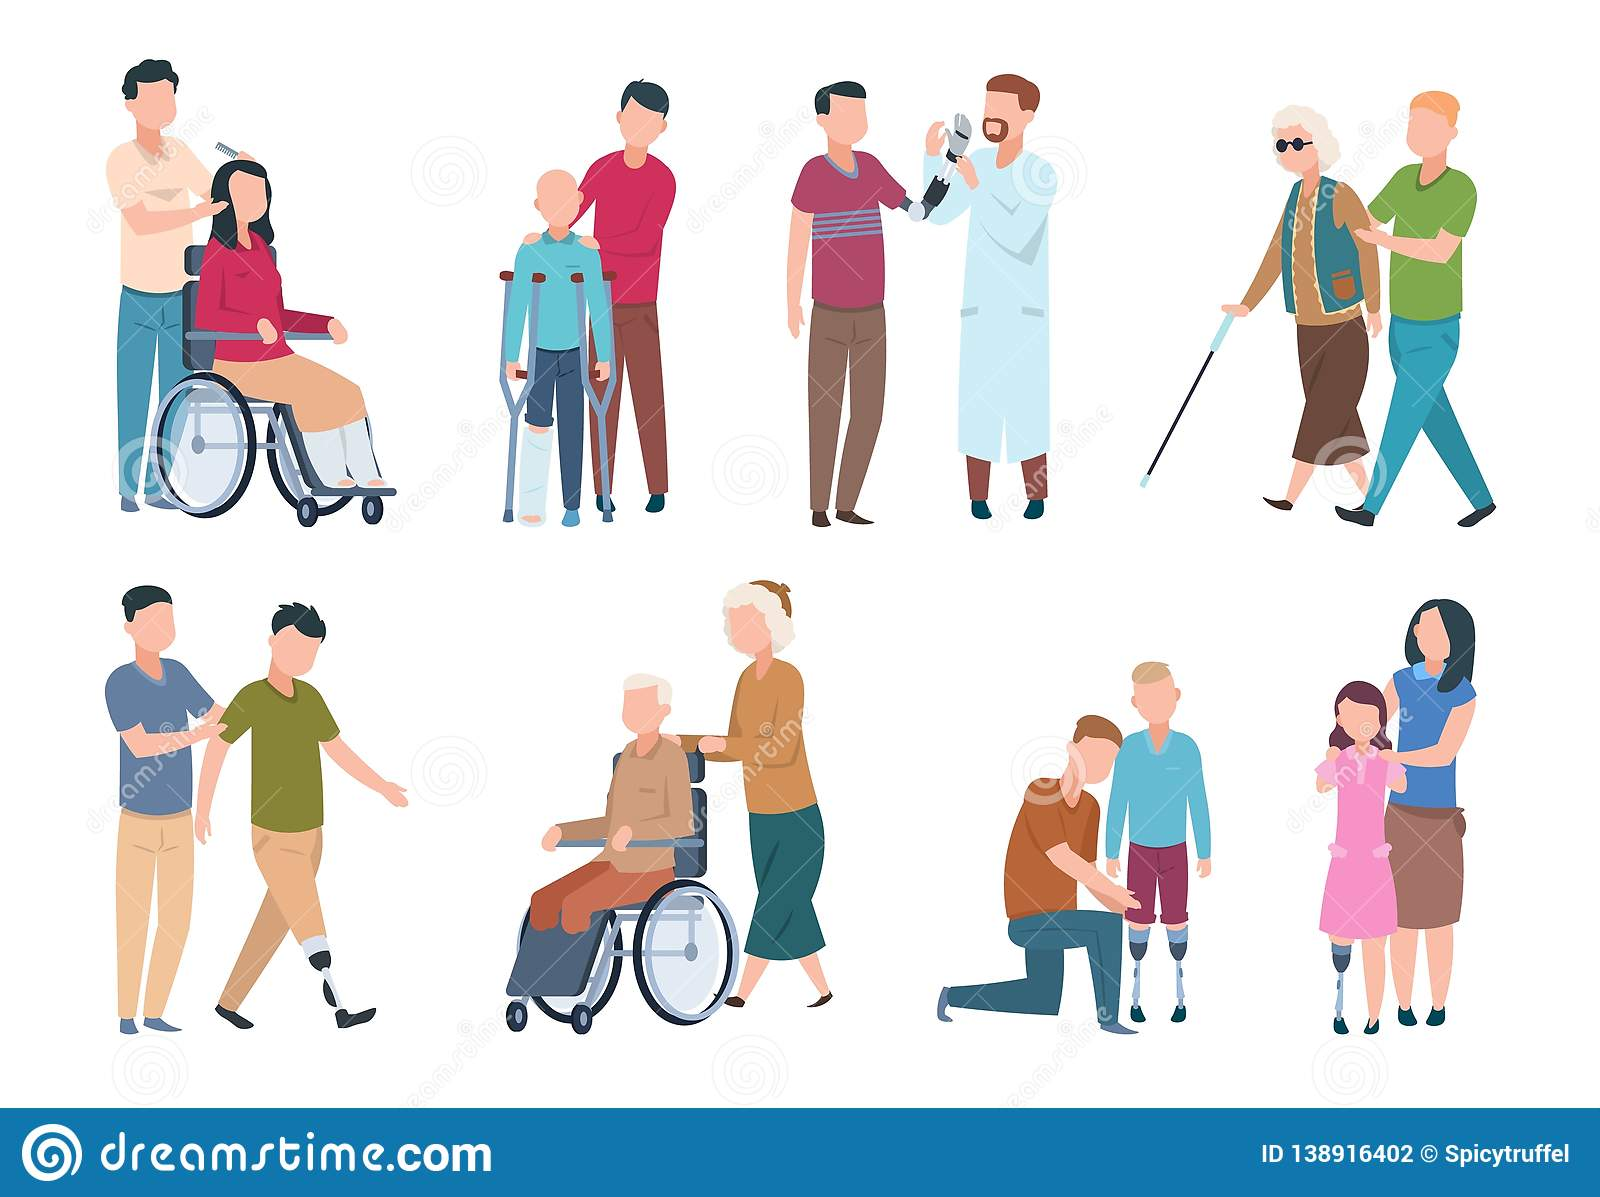 People with disabilities and friends. Disable persons in wheelchair with assistants. Happy disabled, handicapped